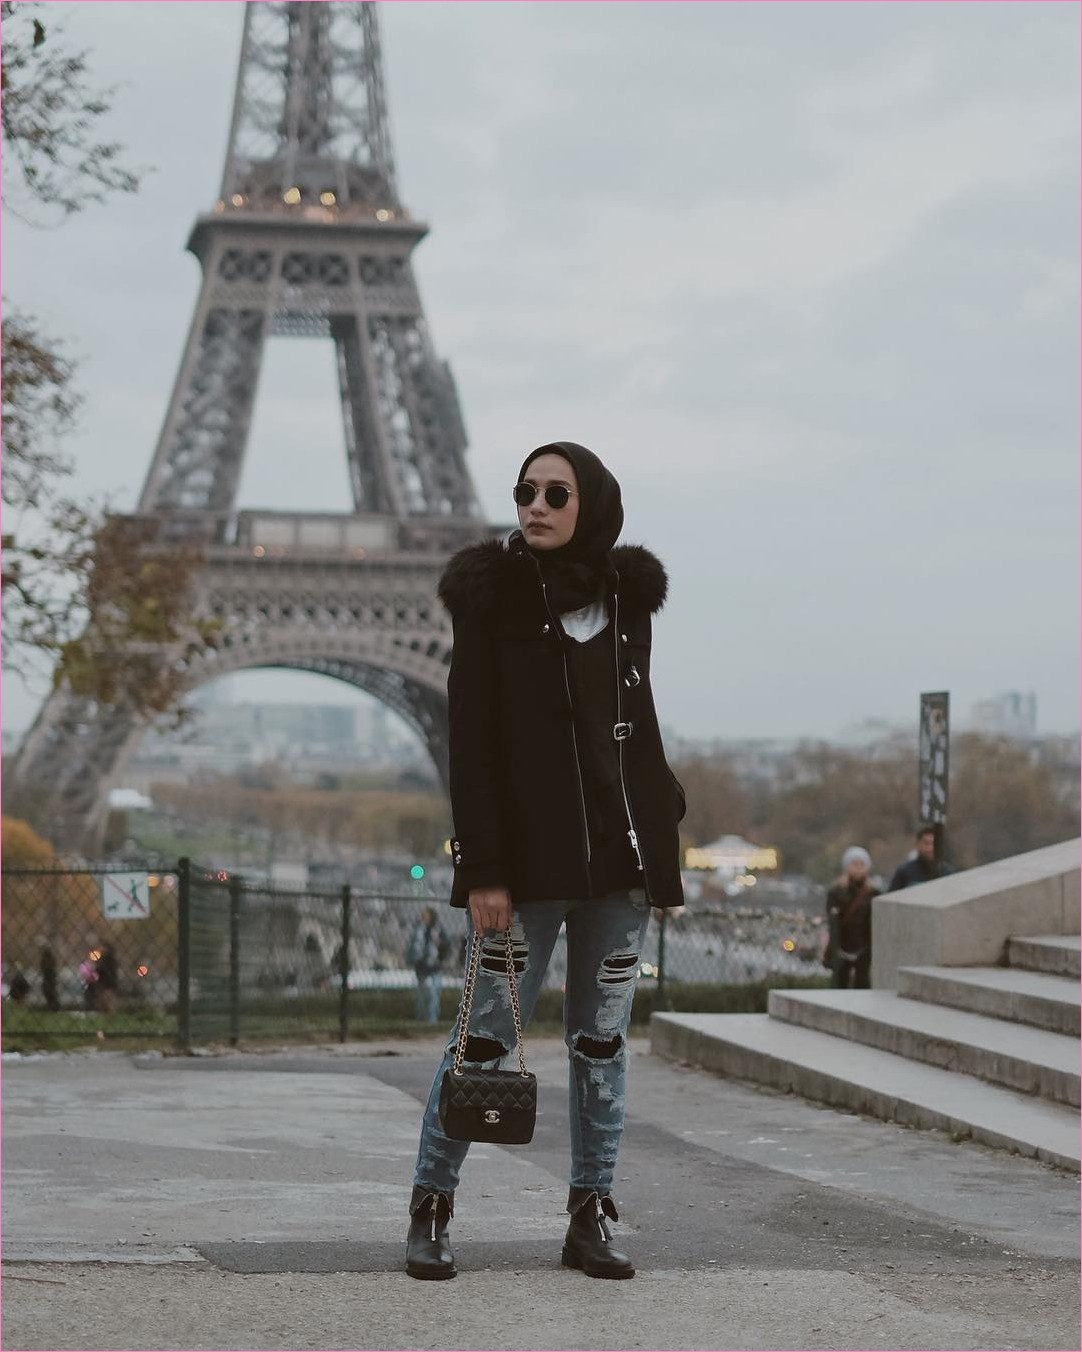 Outfit Baju Traveler Berhijab untuk Keluar Negri Ala Selebgram 2018 kacamata square hijab slingbags channel boots flats jacket hoodie bulu legging hitam kemeja blouse putih ootd outfit trendy menara eiffel tower london coat